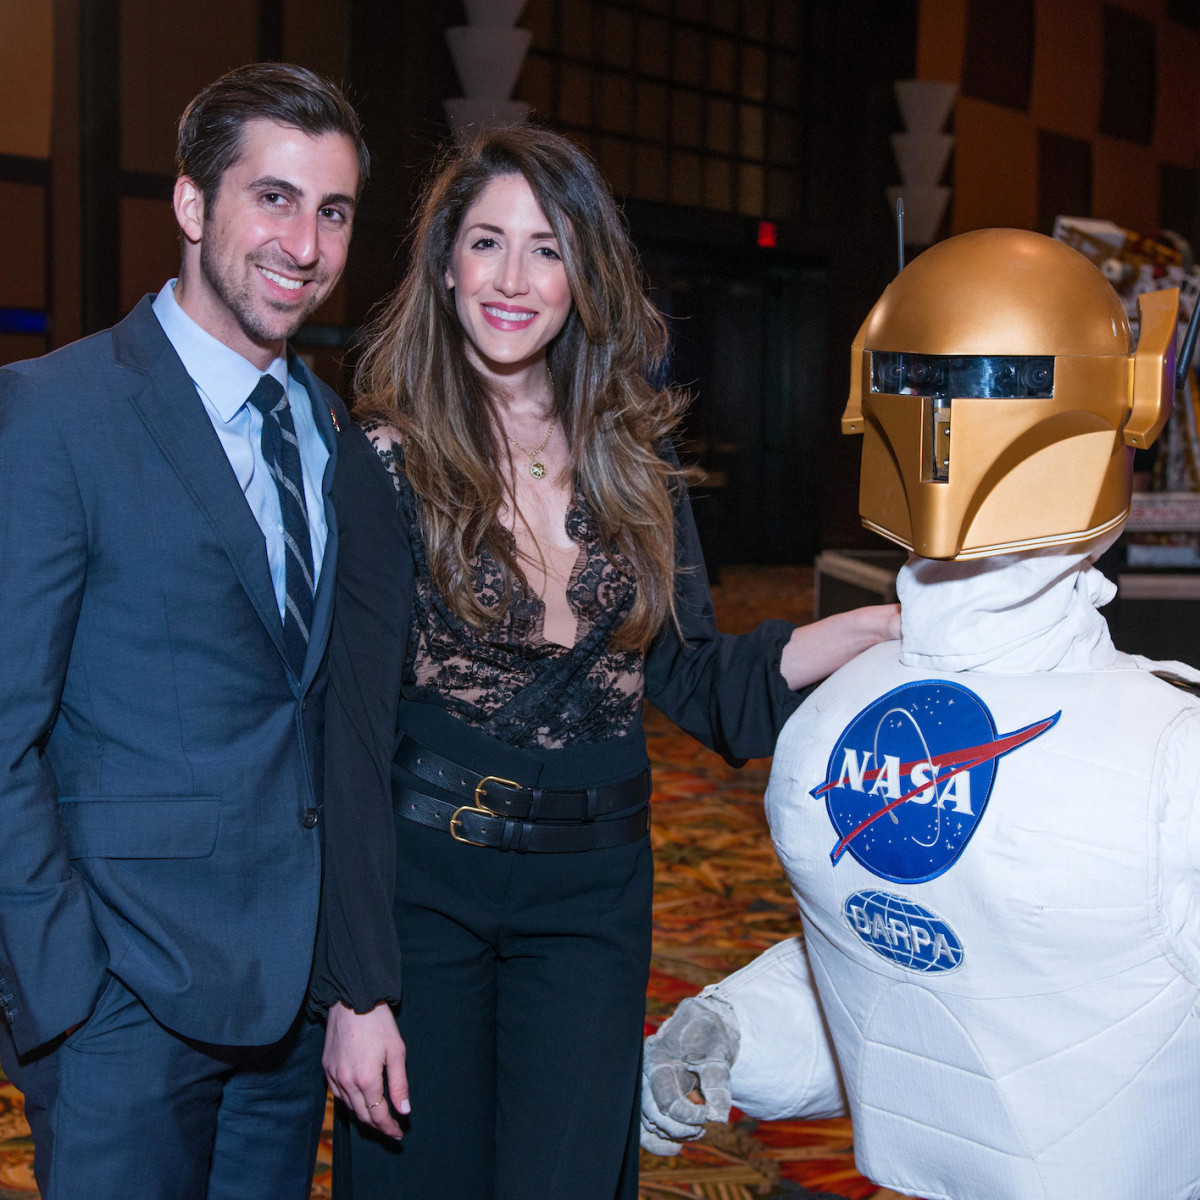 Houston, Space Center Houston Galaxy Gala, April 2017, Jay Zeidman, Anat Zeidman, NASA Robonaut